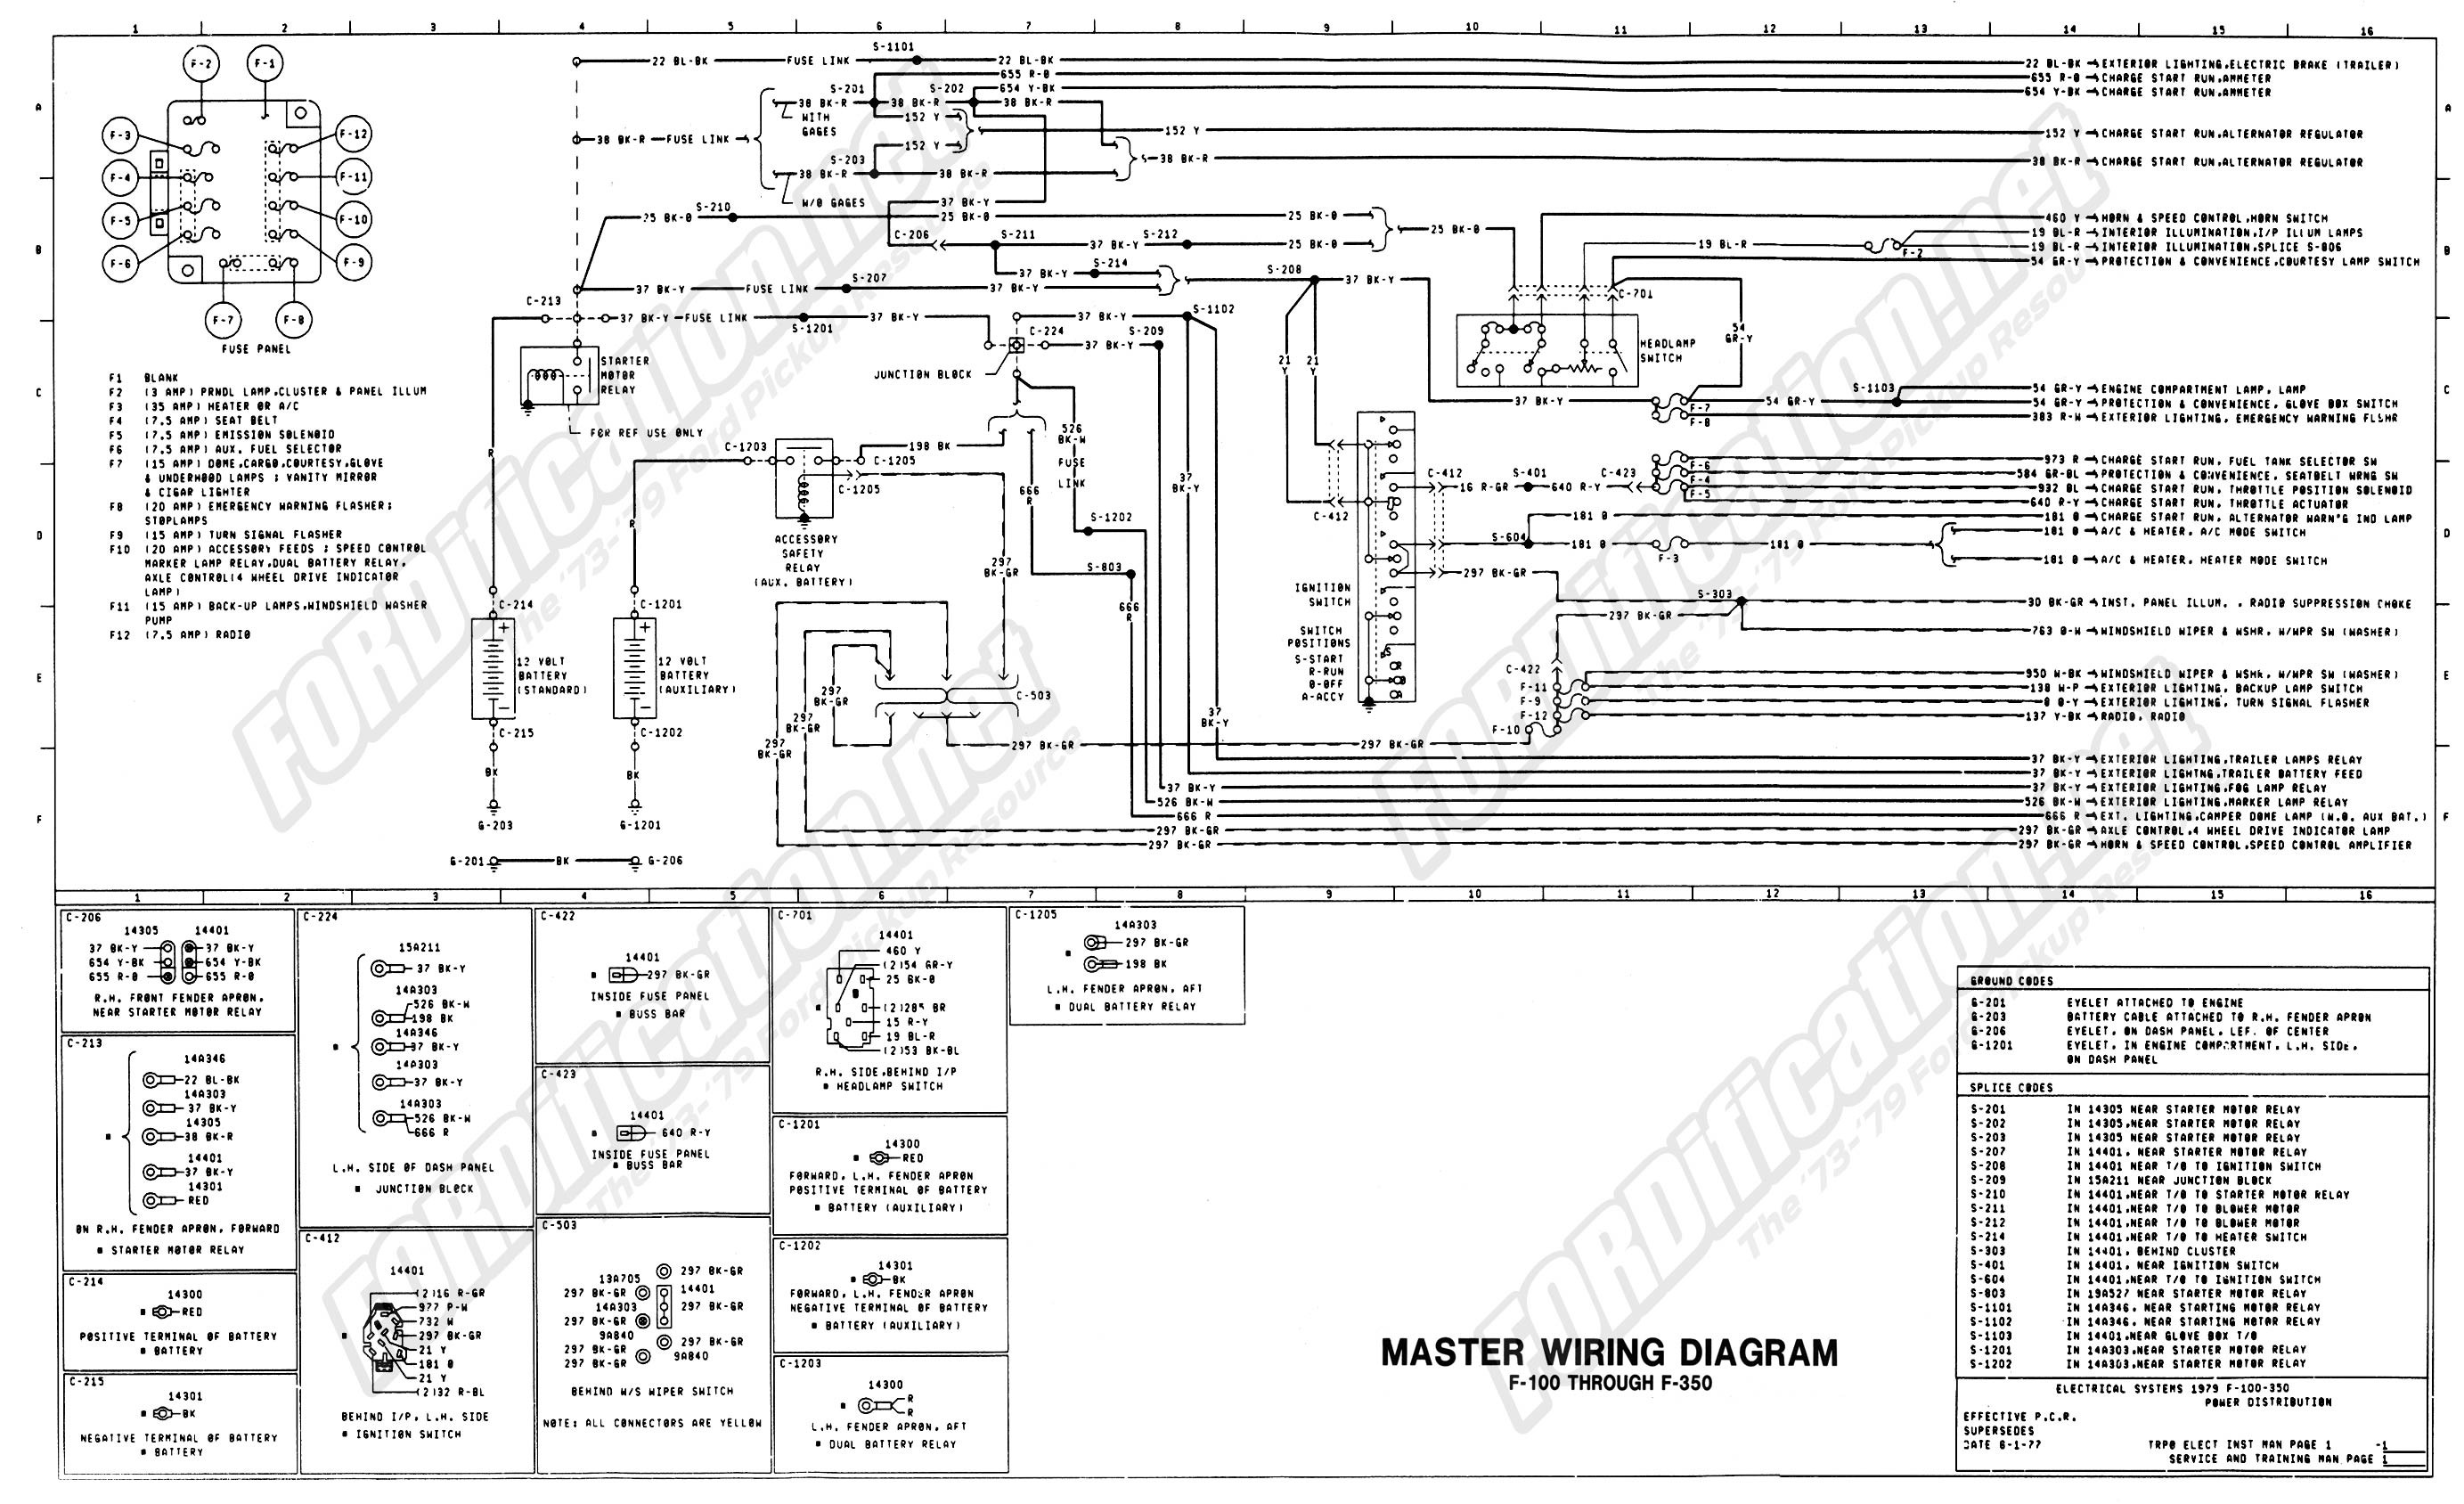 2007 ford Escape Engine Diagram 79 F150 solenoid Wiring Diagram ford Truck Enthusiasts forums Of 2007 ford Escape Engine Diagram